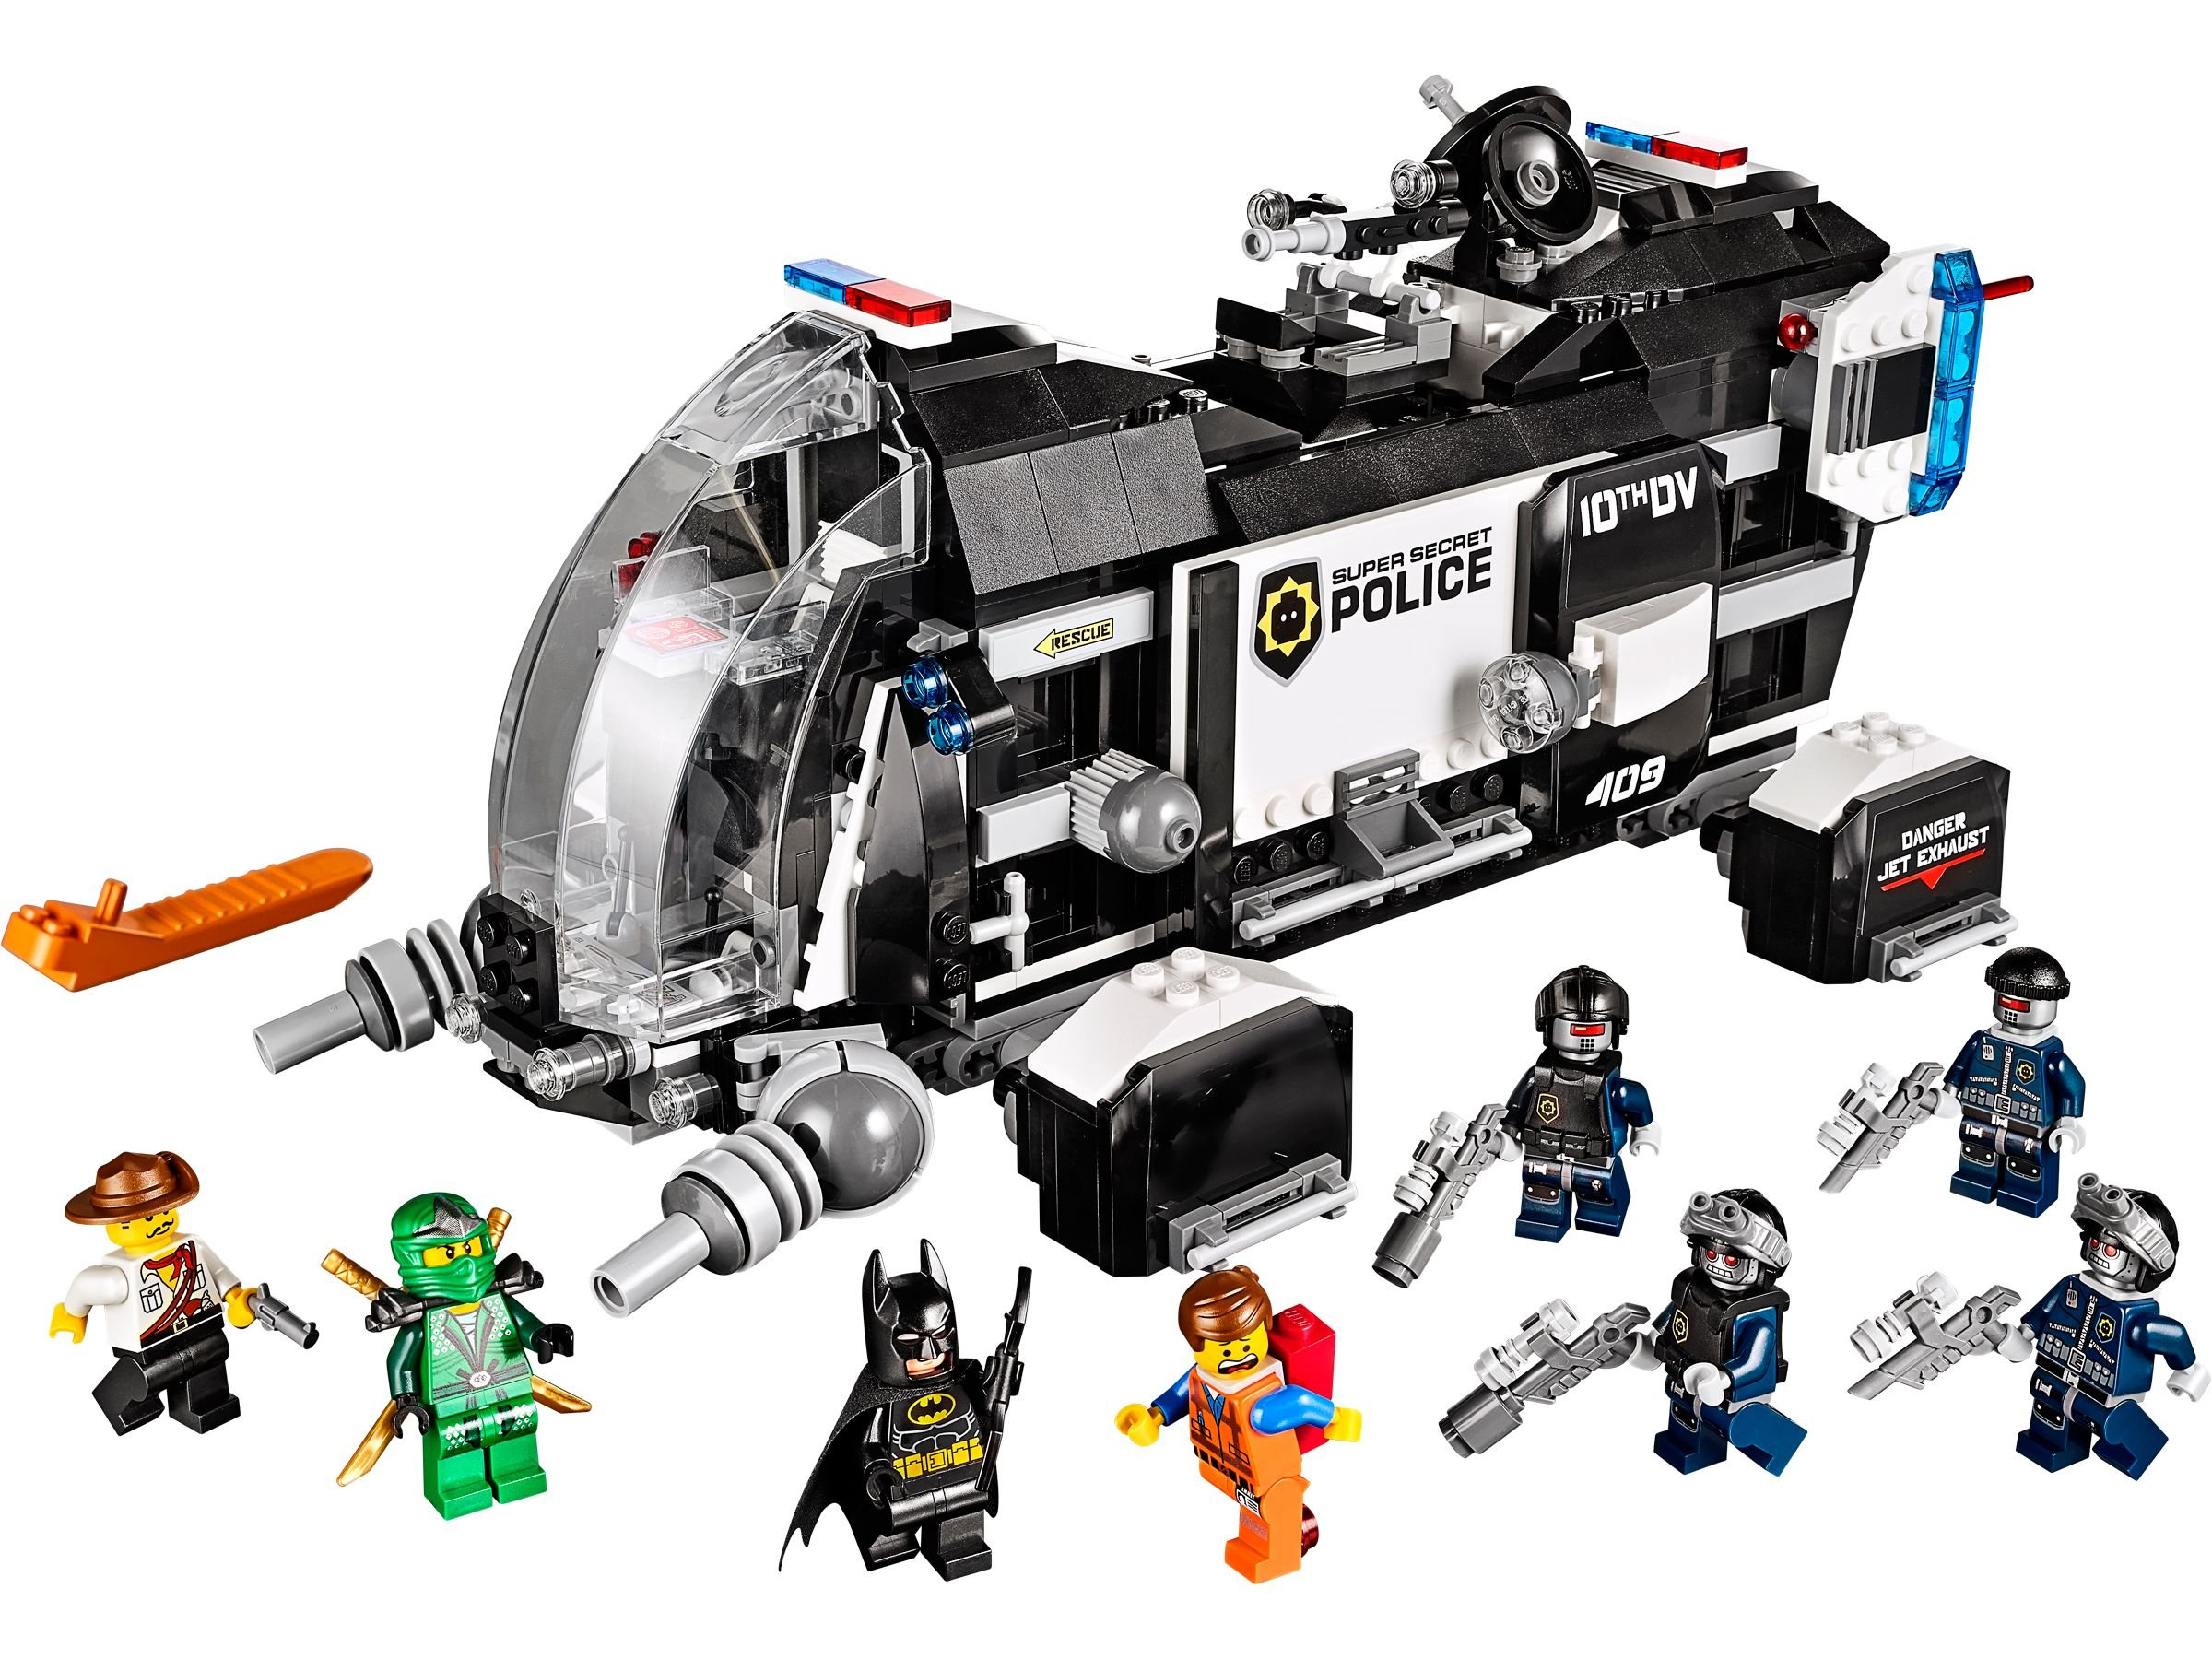 LEGO The LEGO Movie 70815 Raumschiff der Super-Geheimpolizei LEGO_70815.jpg